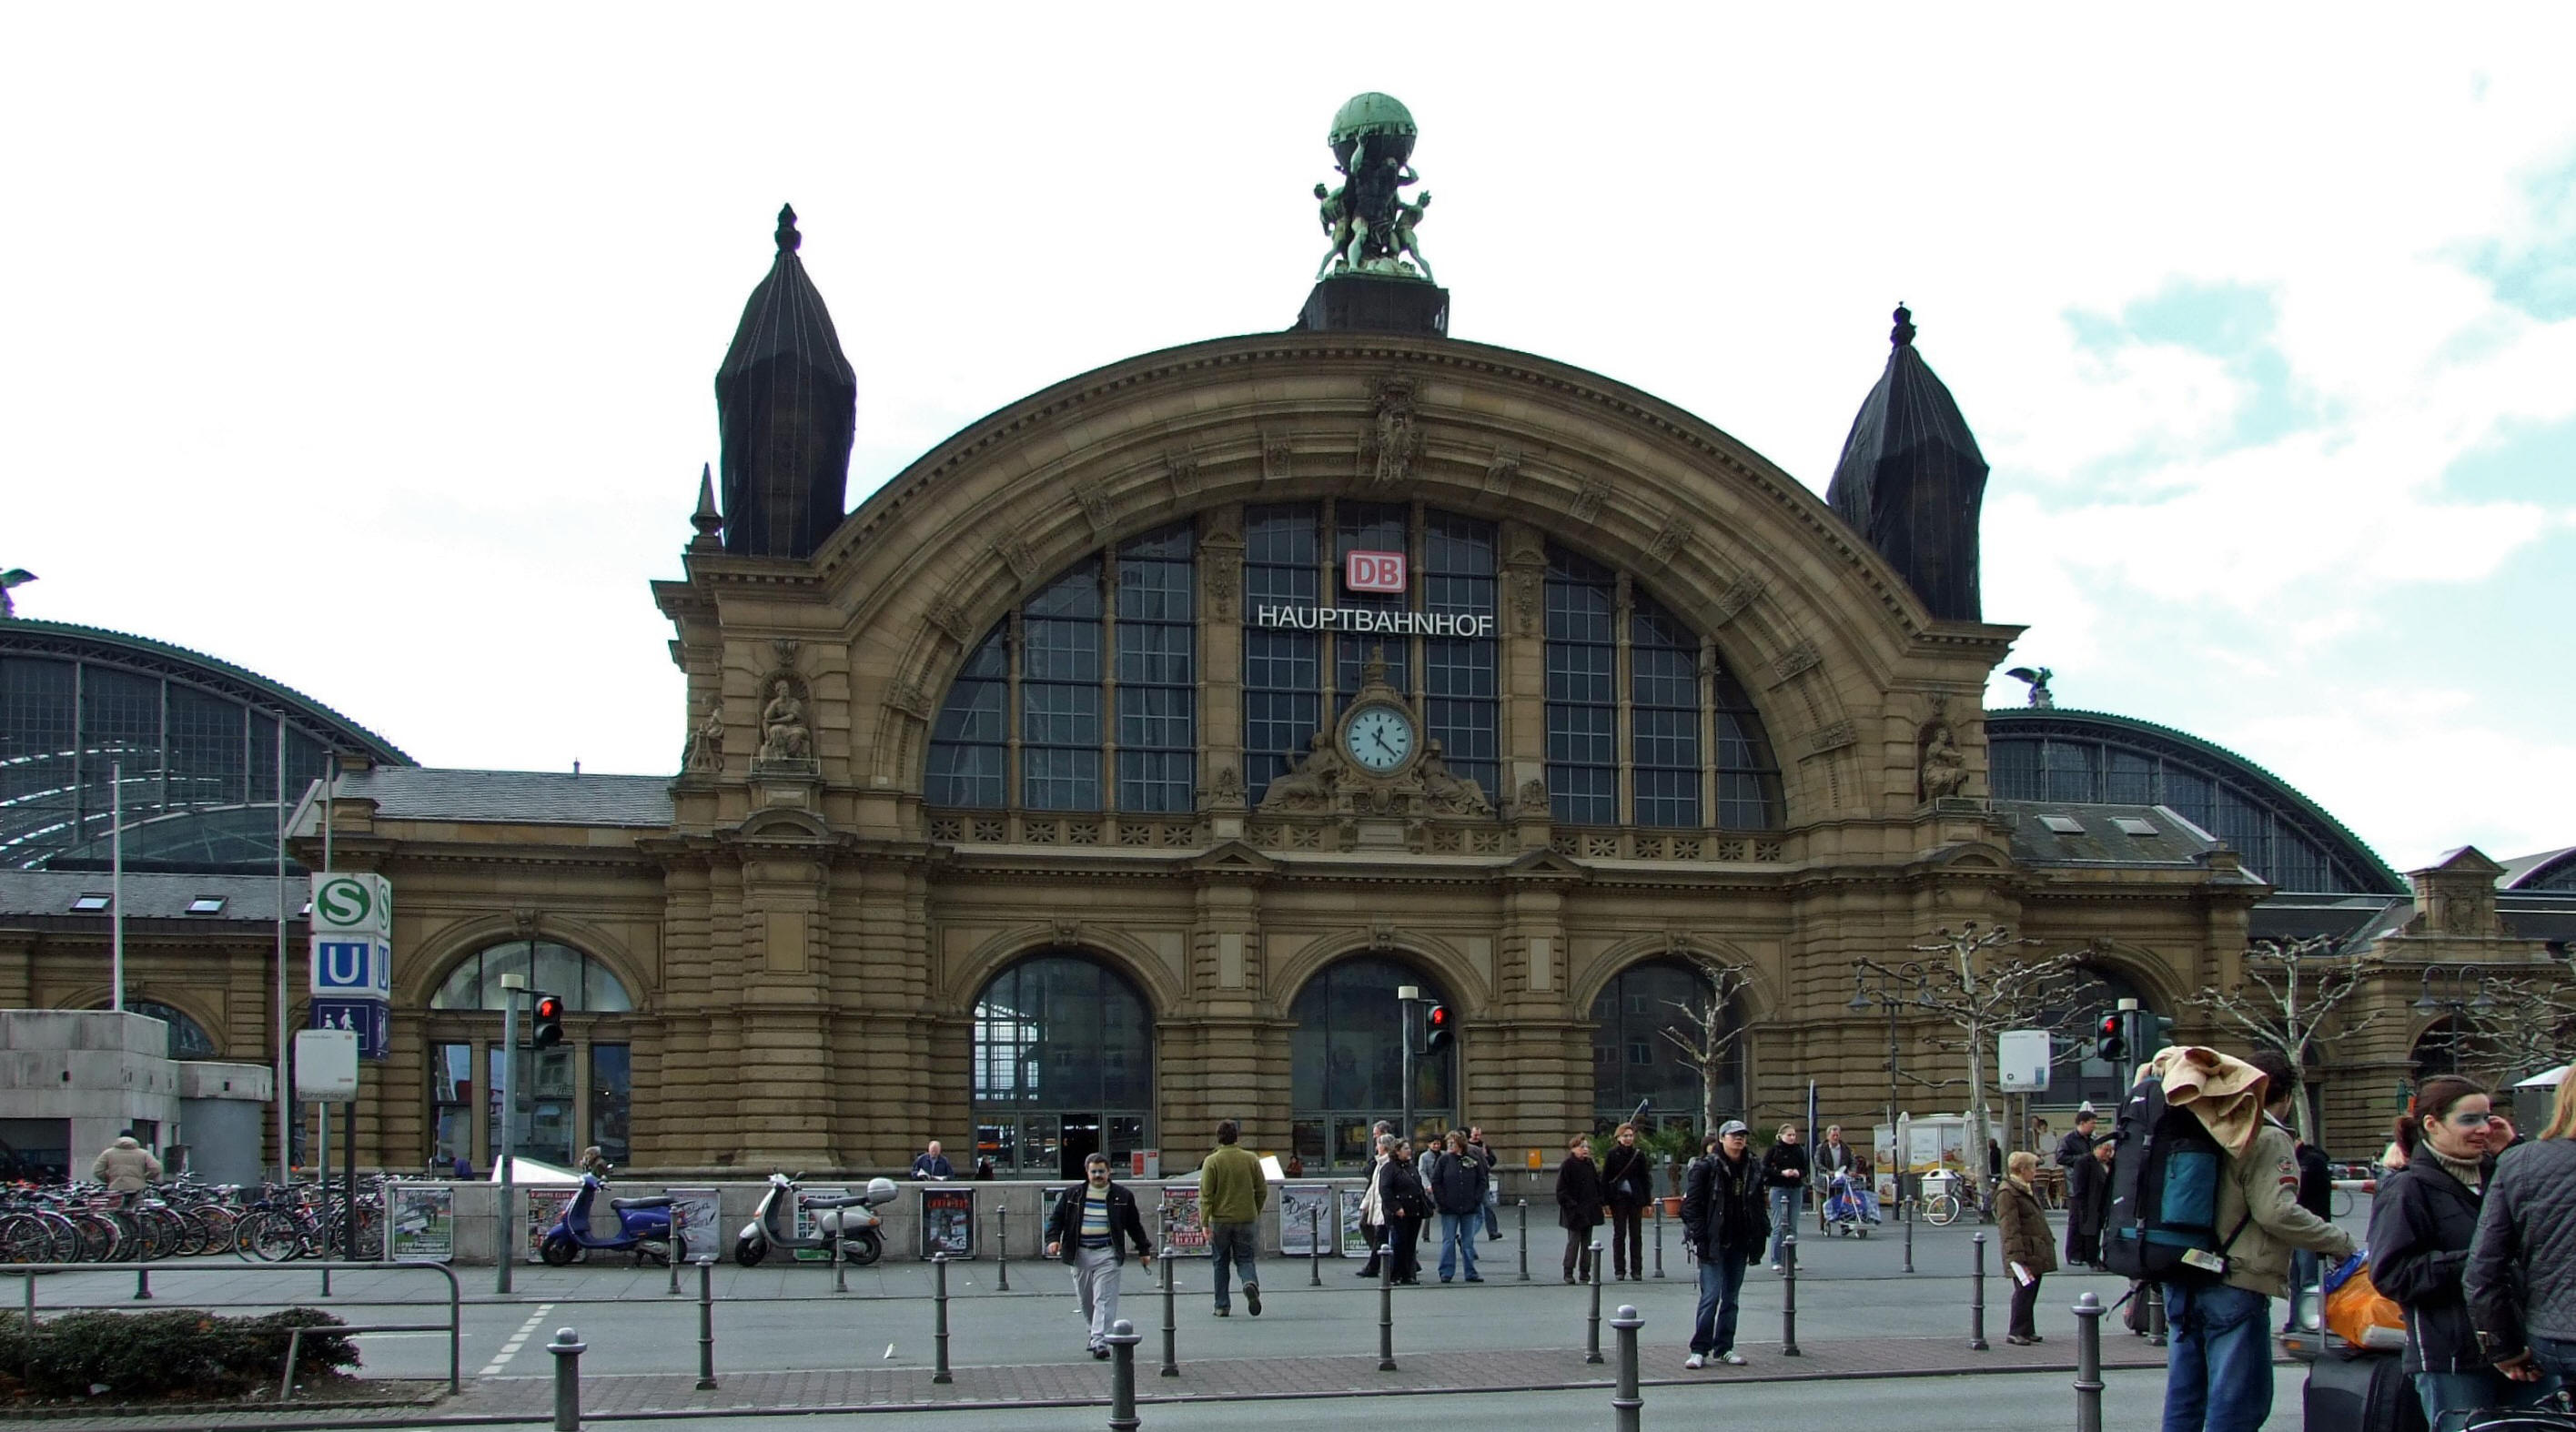 Frankfurt Architecture, Germany, Hauptbahnhof Train station